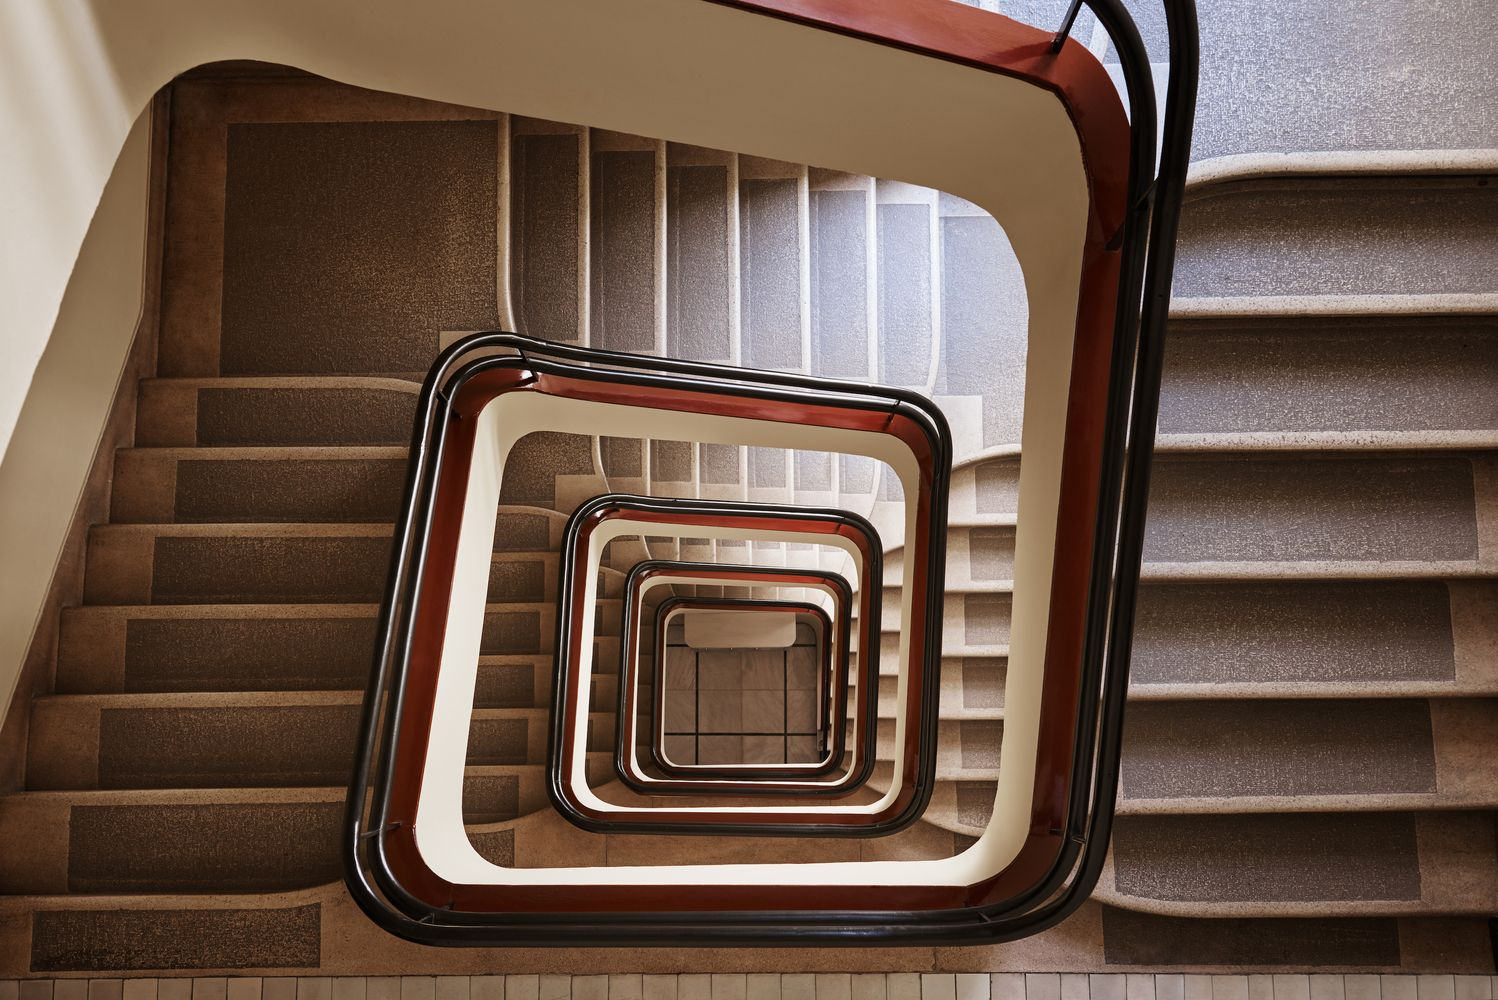 Gallery of Explore Budapest's Art Deco and Bauhaus Staircases Through This Photo Series - 4